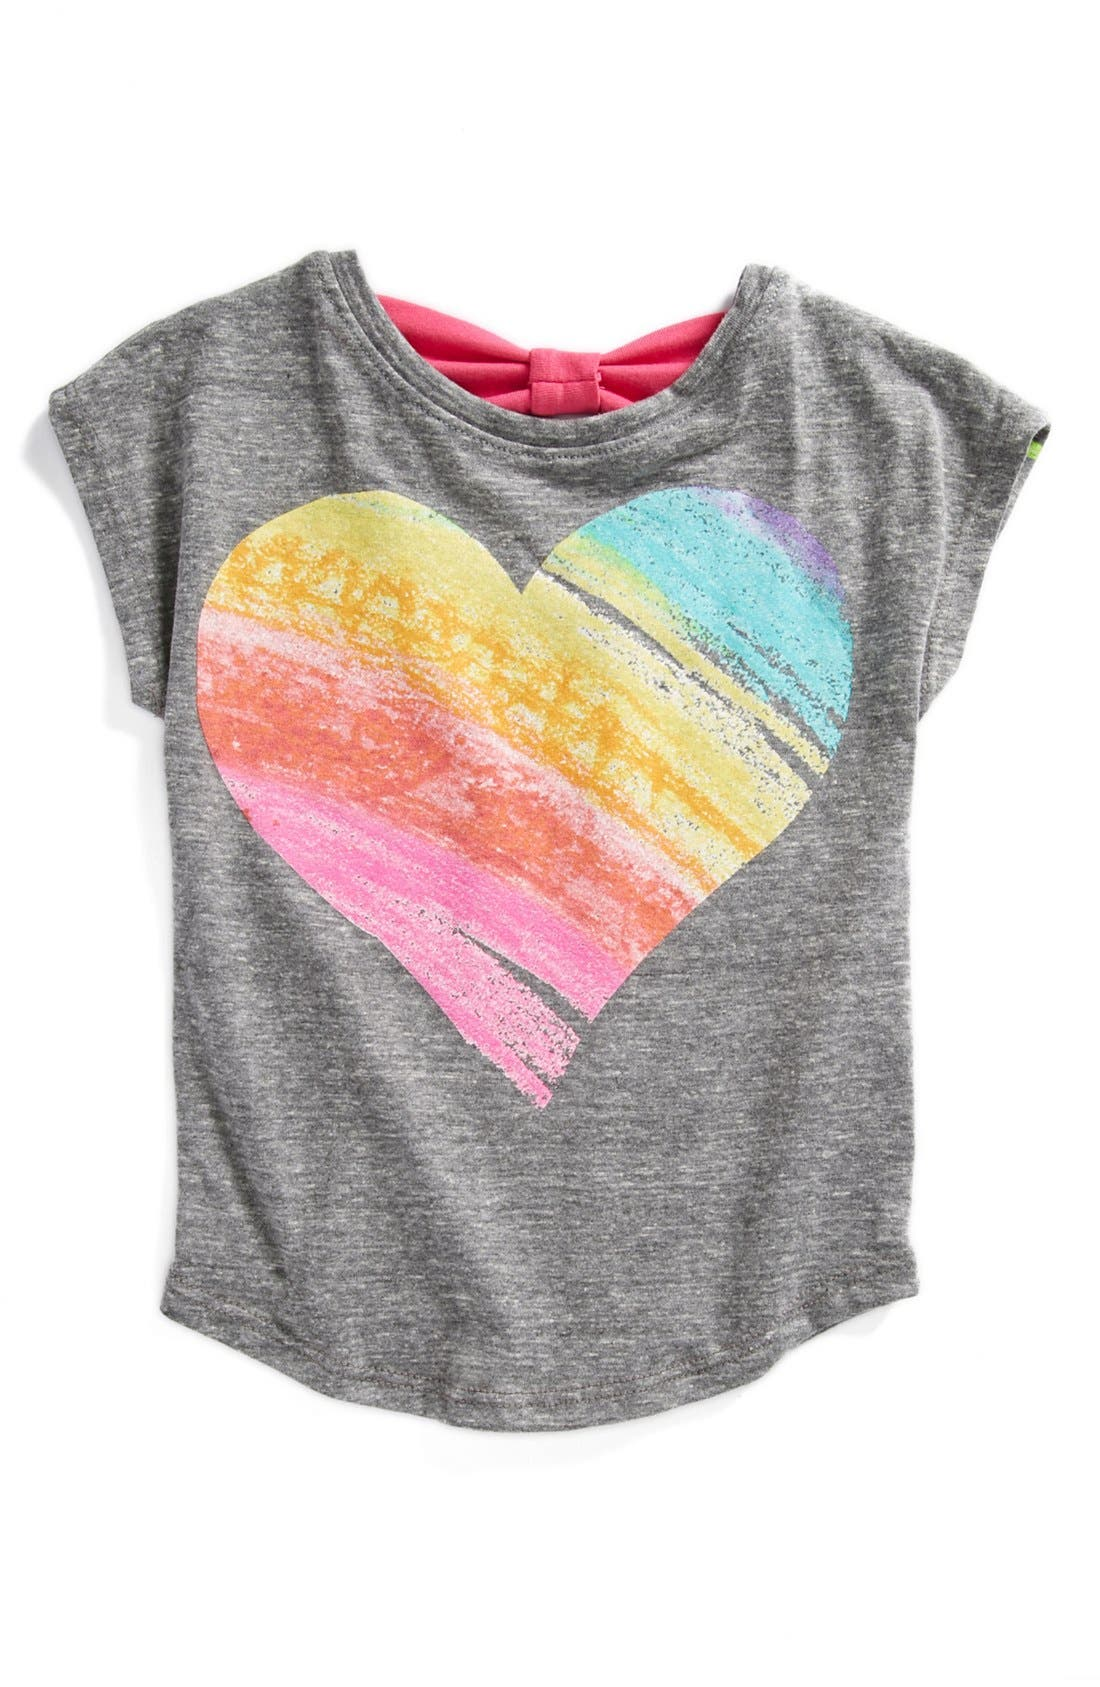 Main Image - Mighty Fine 'Crayon Heart' Tee (Toddler Girls)